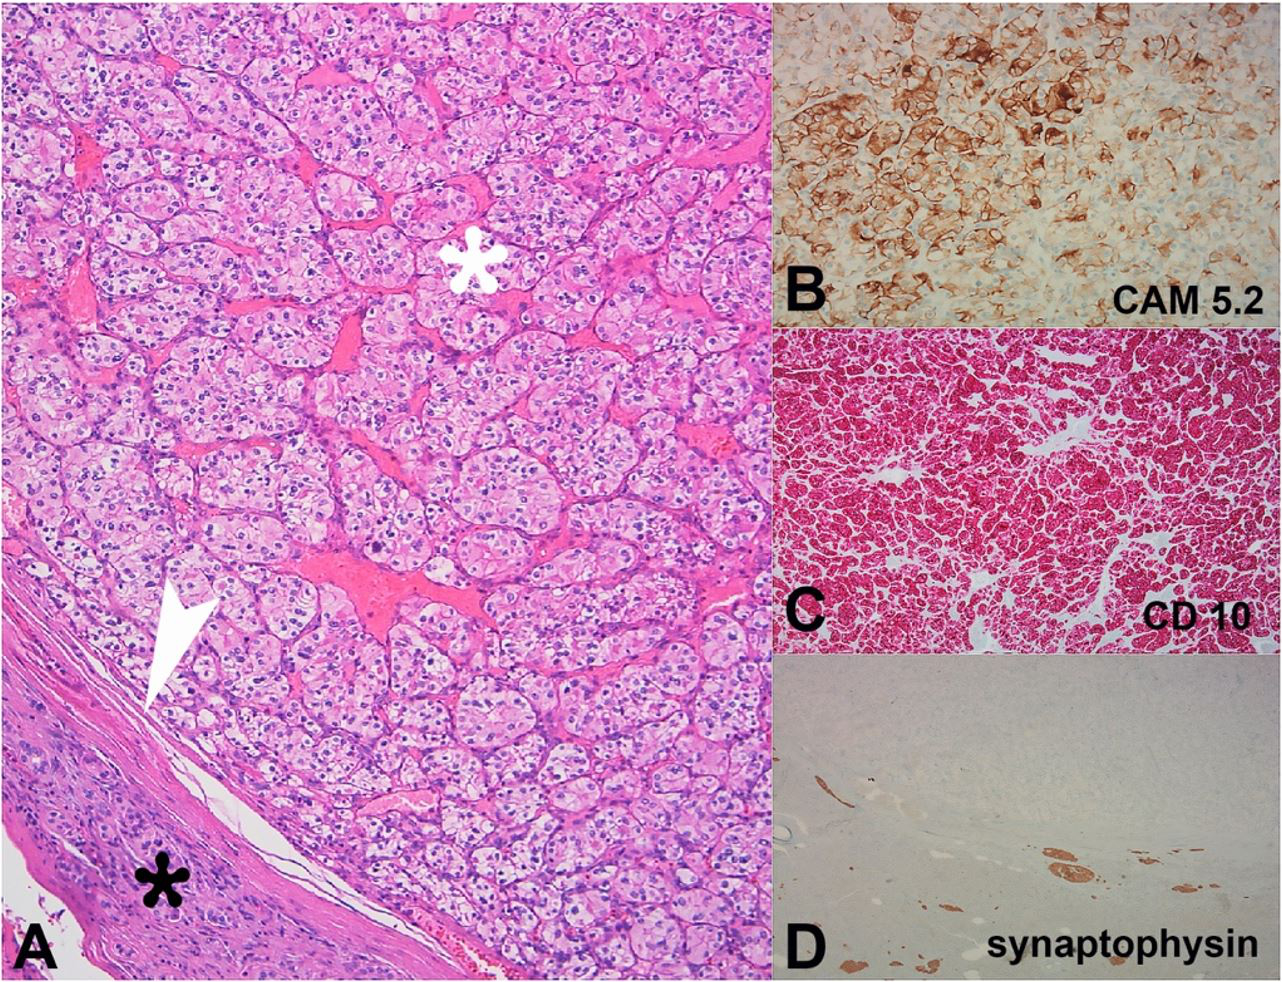 Photomicrography of the tumor. A – Alveolar growth of large polygonal cells with clear cytoplasm, uniform round nuclei, and inconspicuous nucleoli (white asterisk), surrounded by a thin fibrous capsule (arrowhead) and normal pancreatic tissue (black asterisk) (H&E, 100x); B–D – The immunohistochemical study shows positivity for CAM 5.2 and CD10, and negativity for synaptophysin.